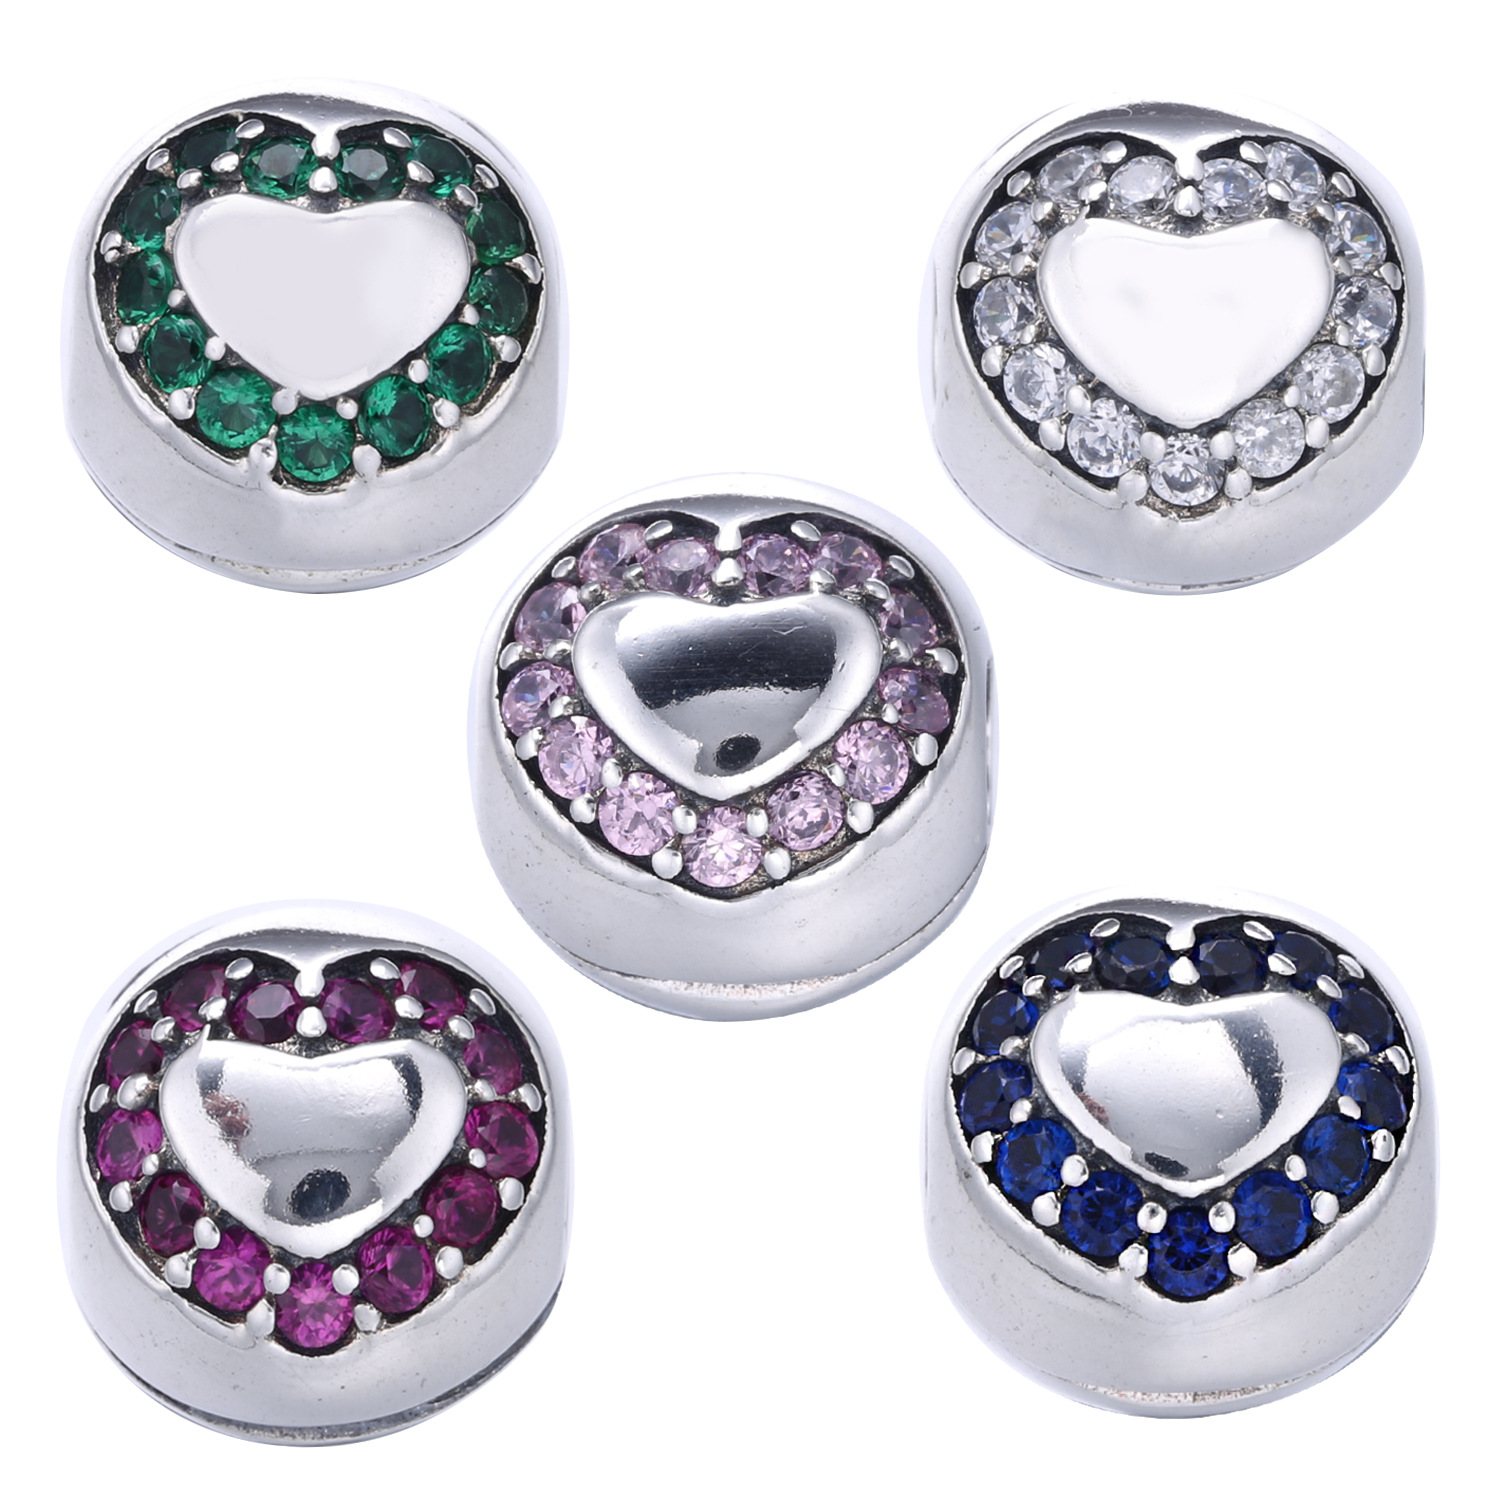 Authentic 925 Sterling Silver Stopper Pave Heart Purple CZ Clip Beads Fit Original Pandora Charms Bracelets DIY Jewelry Making